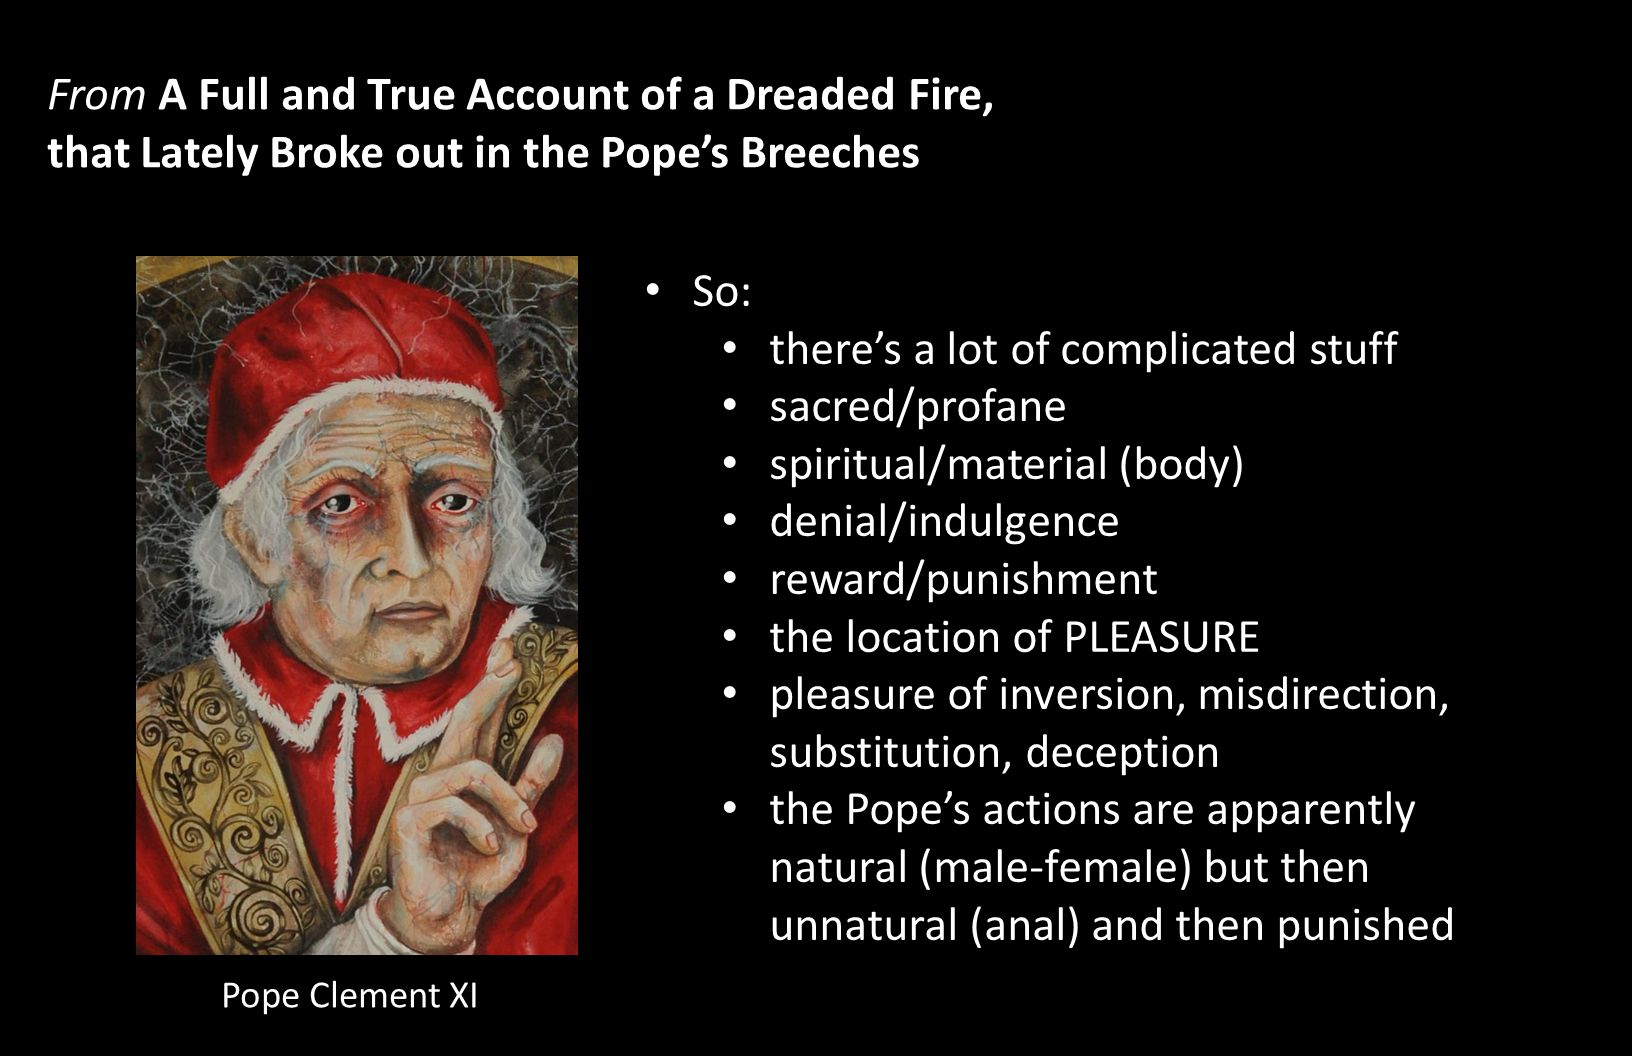 From A Full and True Account of a Dreaded Fire, that Lately Broke out in the Pope's Breeches So: there's a lot of complicated stuff sacred/profane spi